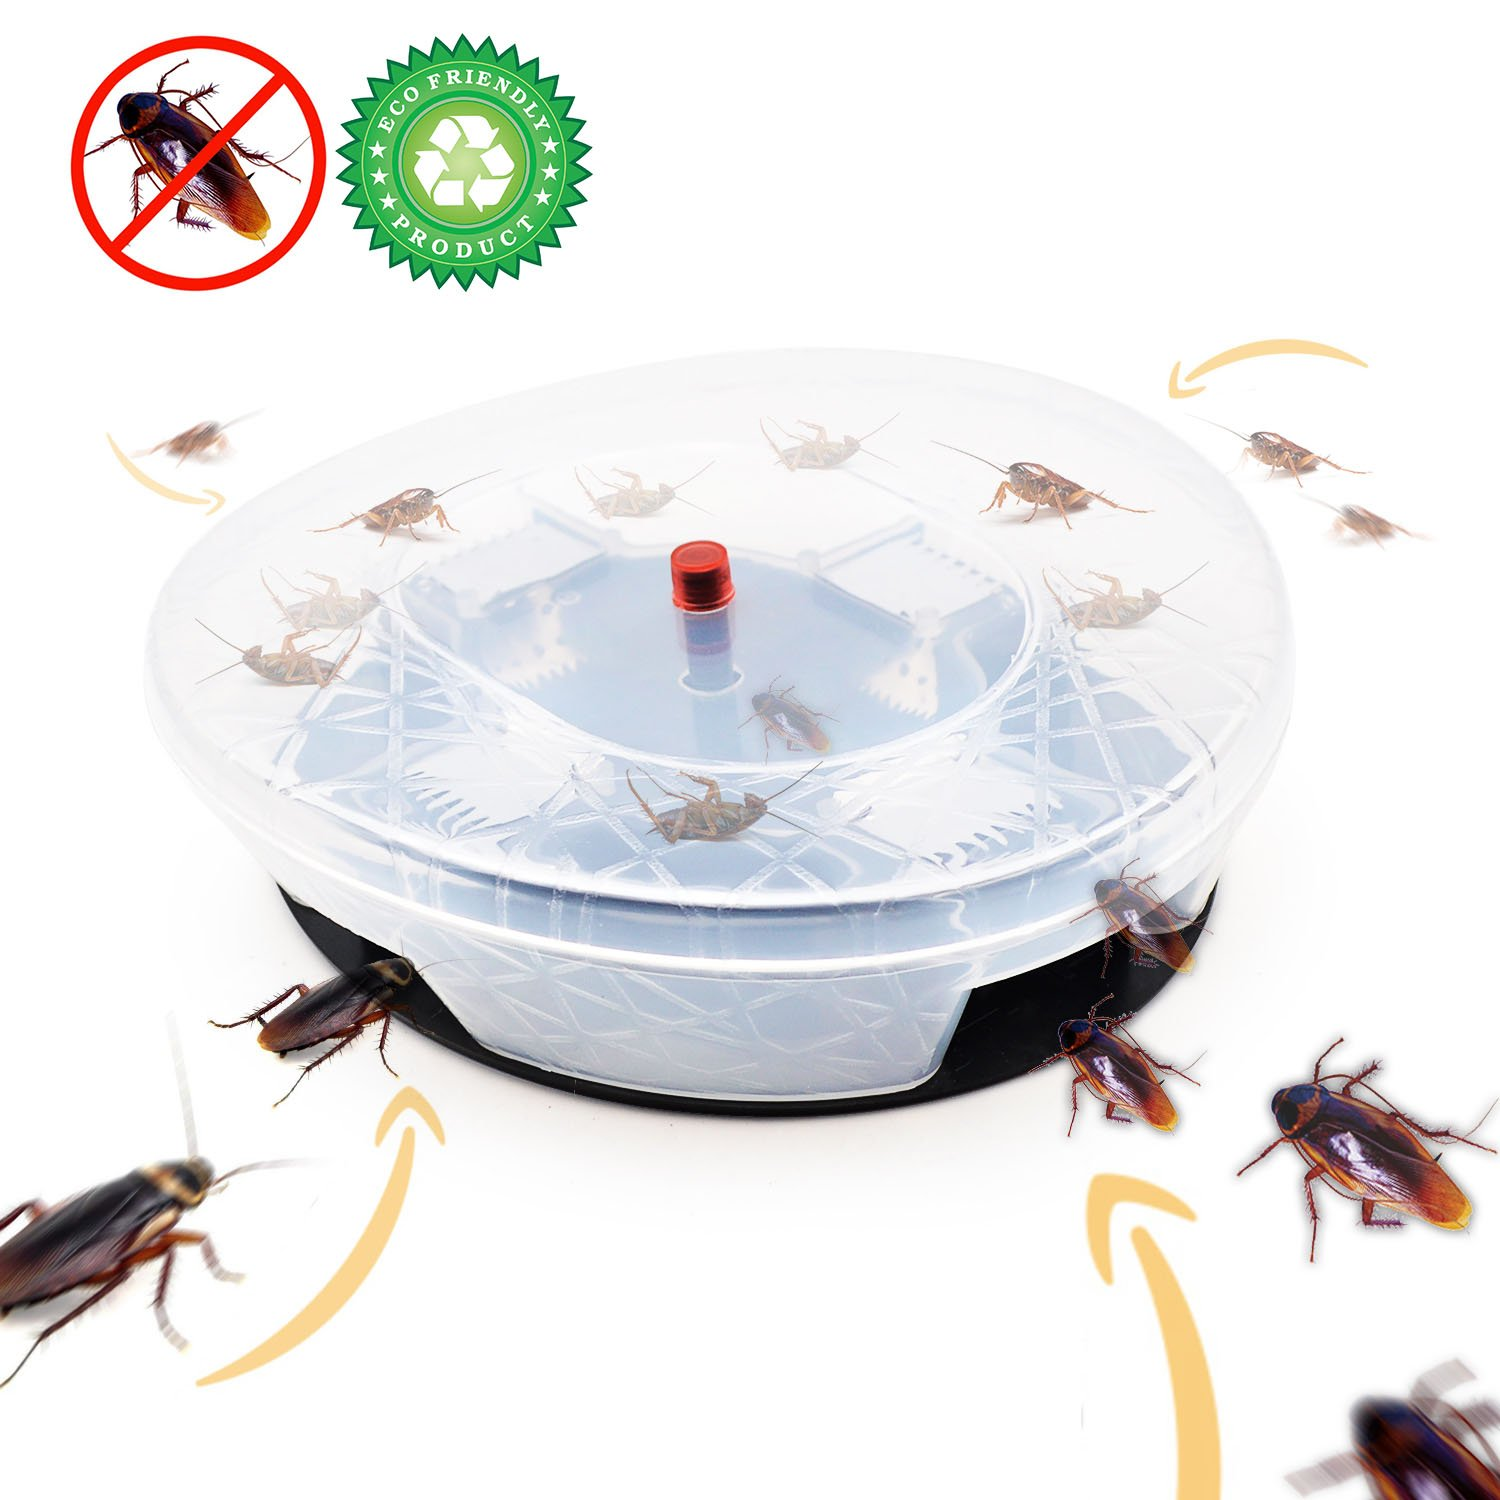 Cheap Roach Trap, Find Roach Trap Deals On Line At Alibaba.com